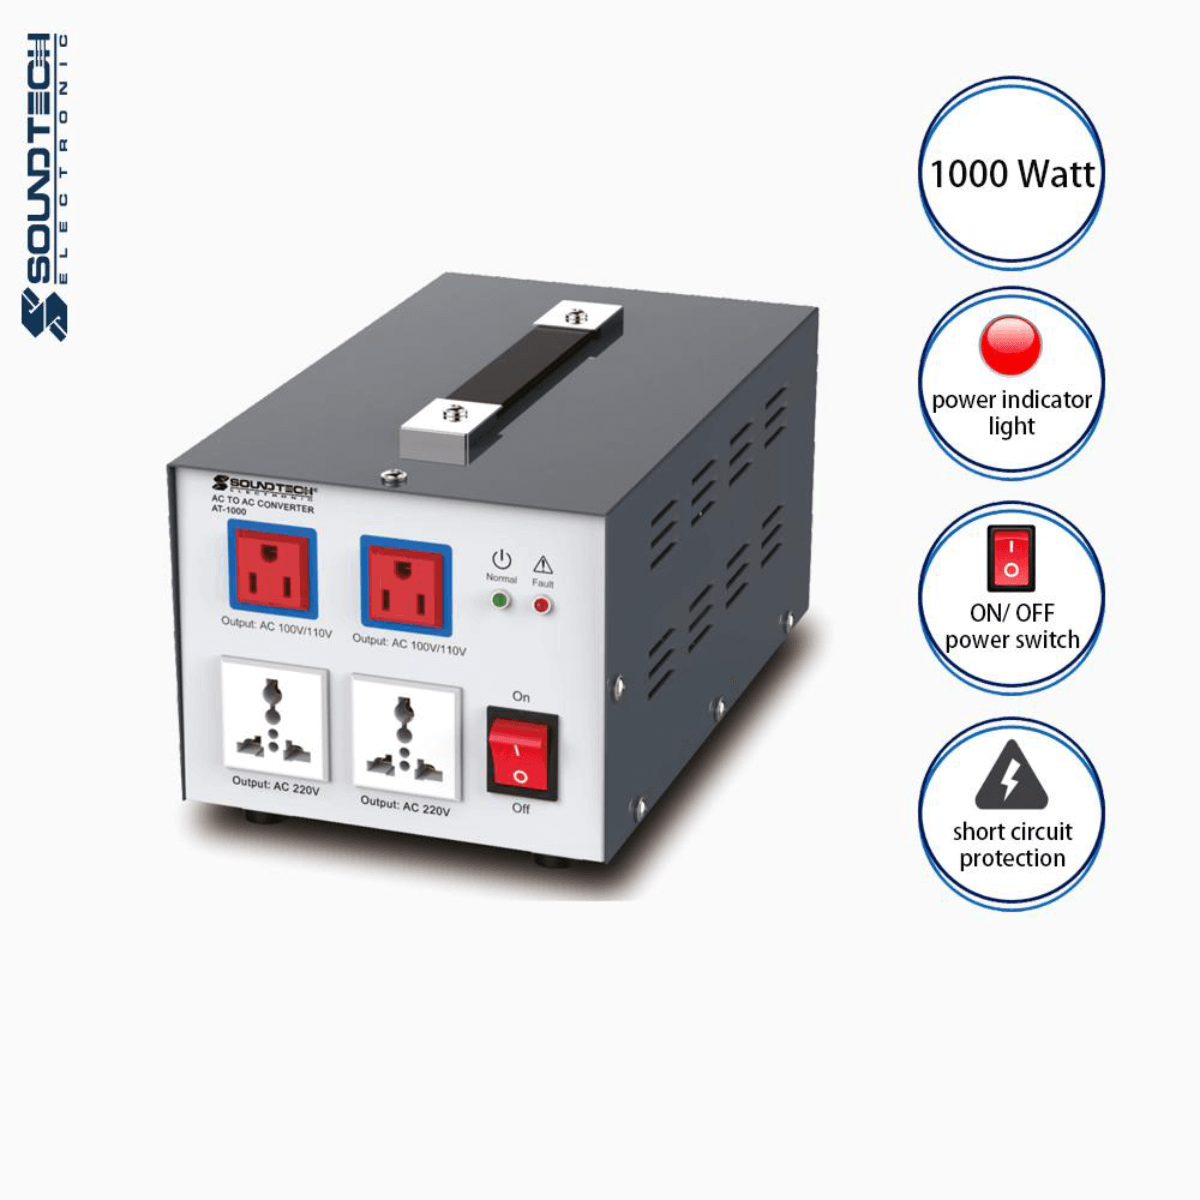 Soundteoh 1000 Watt AC-AC Converter AT-1000